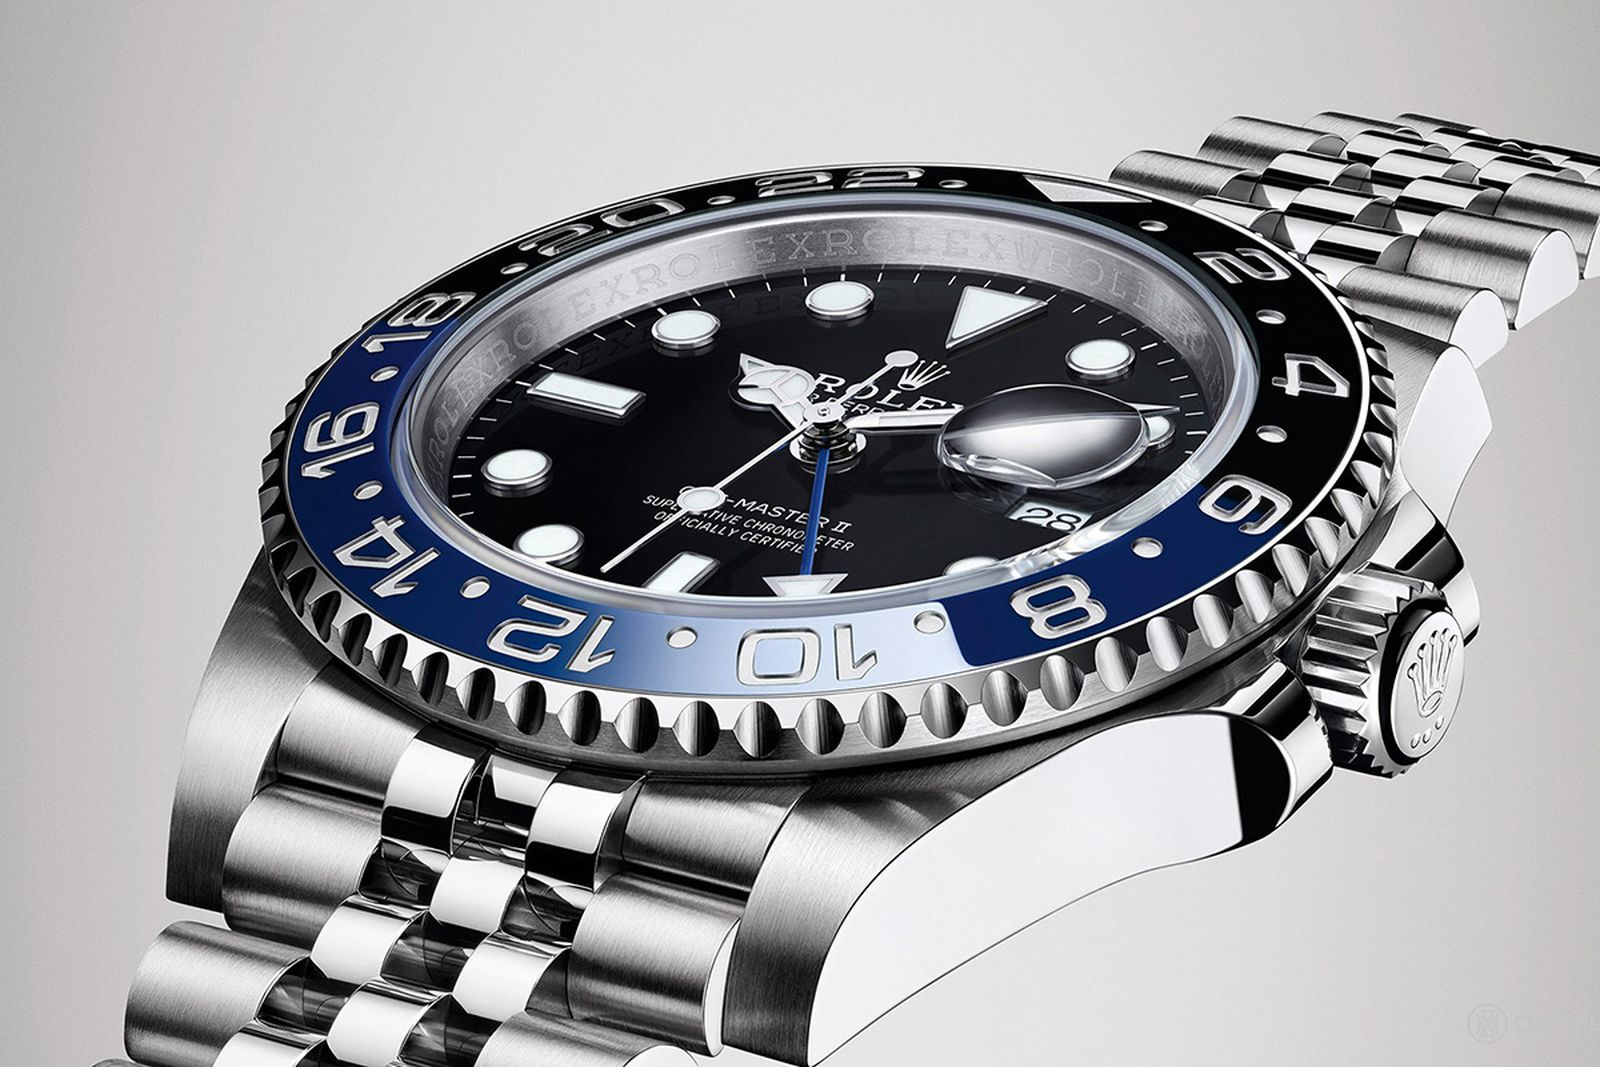 guide-nicknames-used-rolex-watches-main